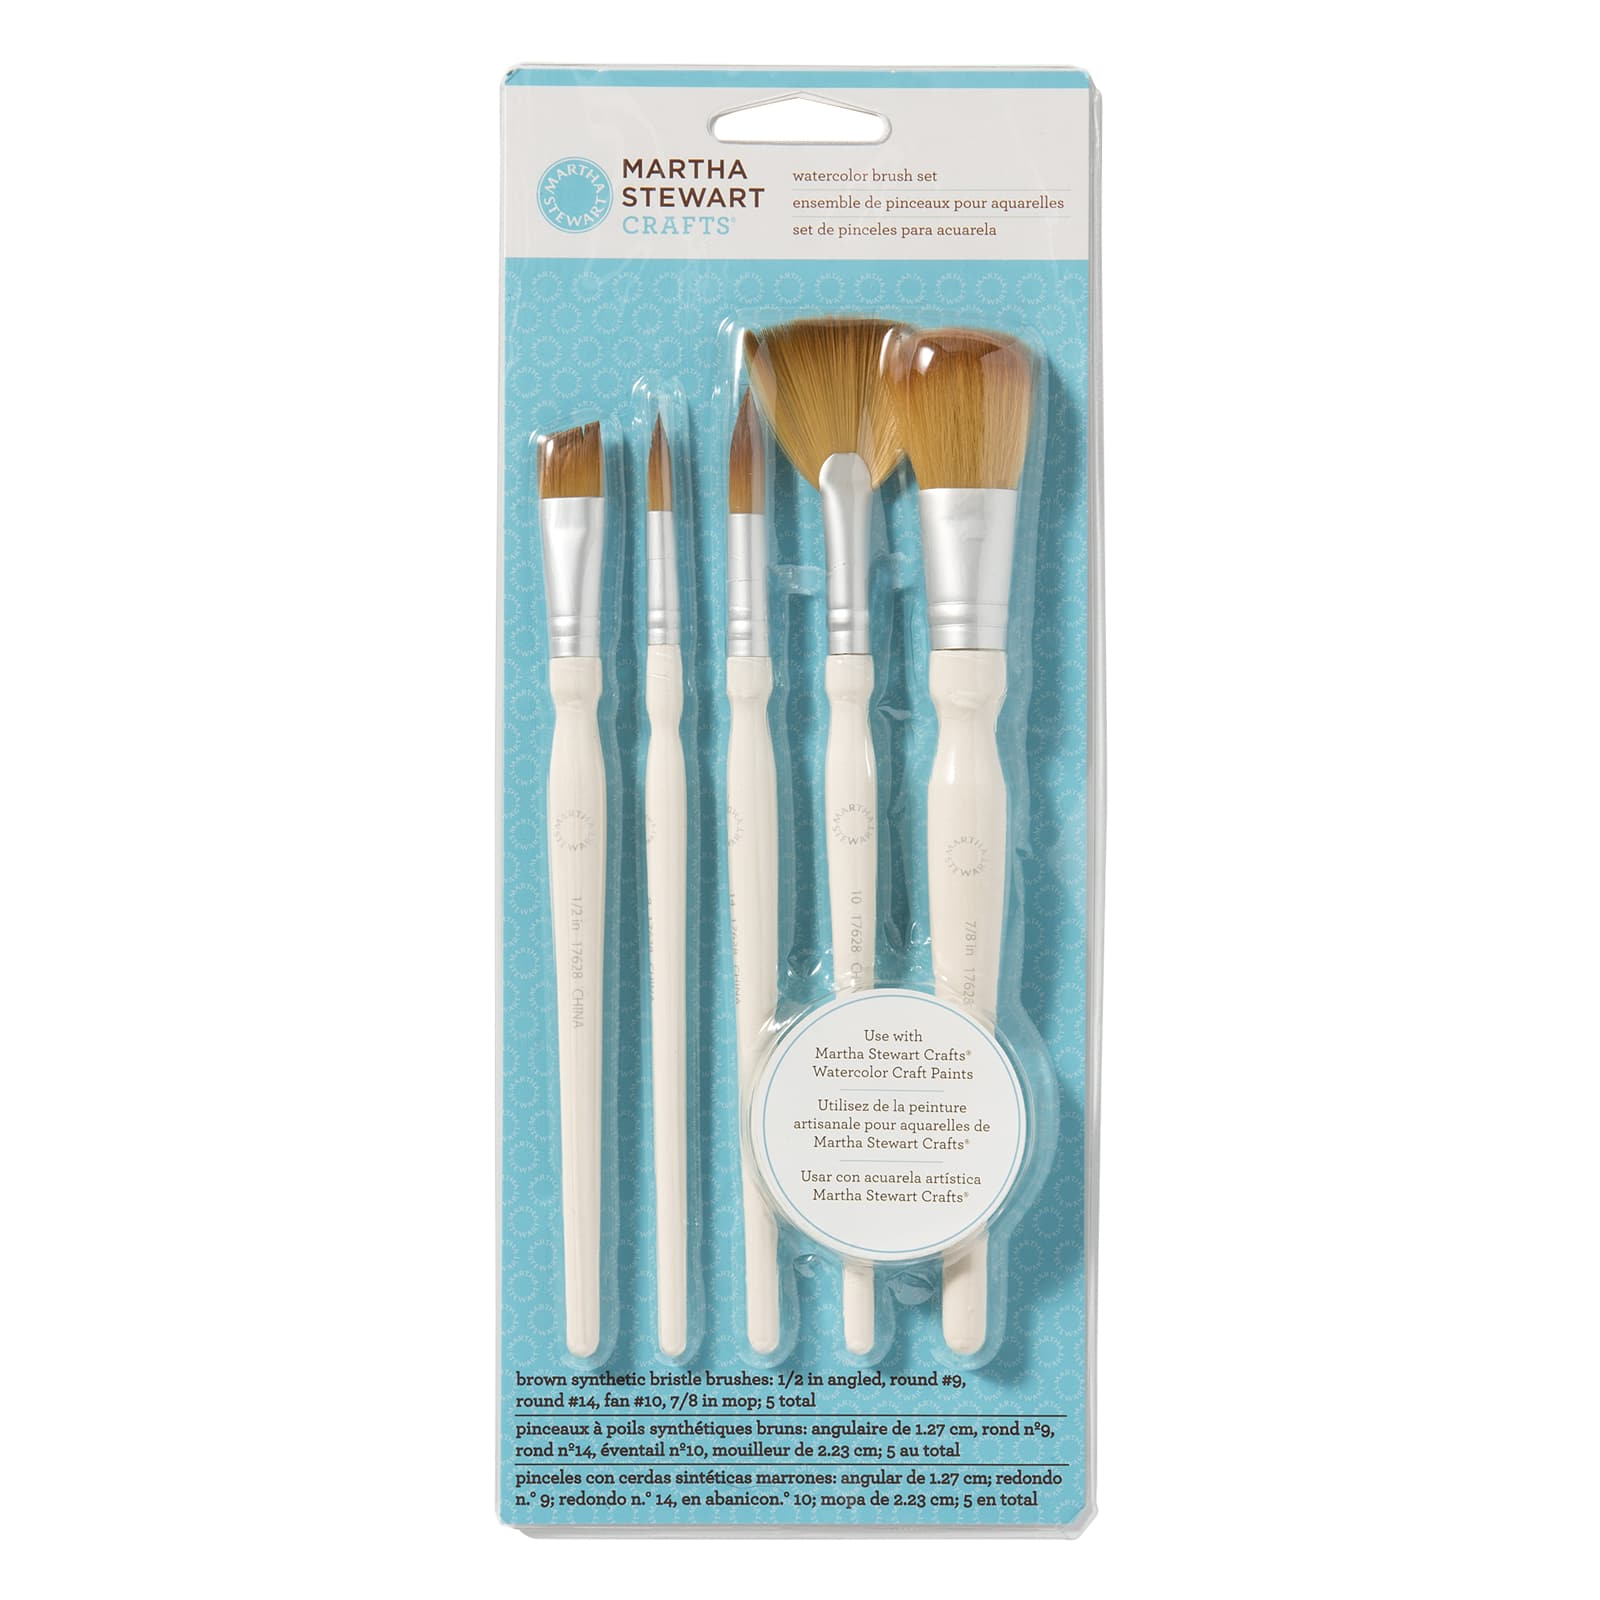 martha stewart crafts watercolor